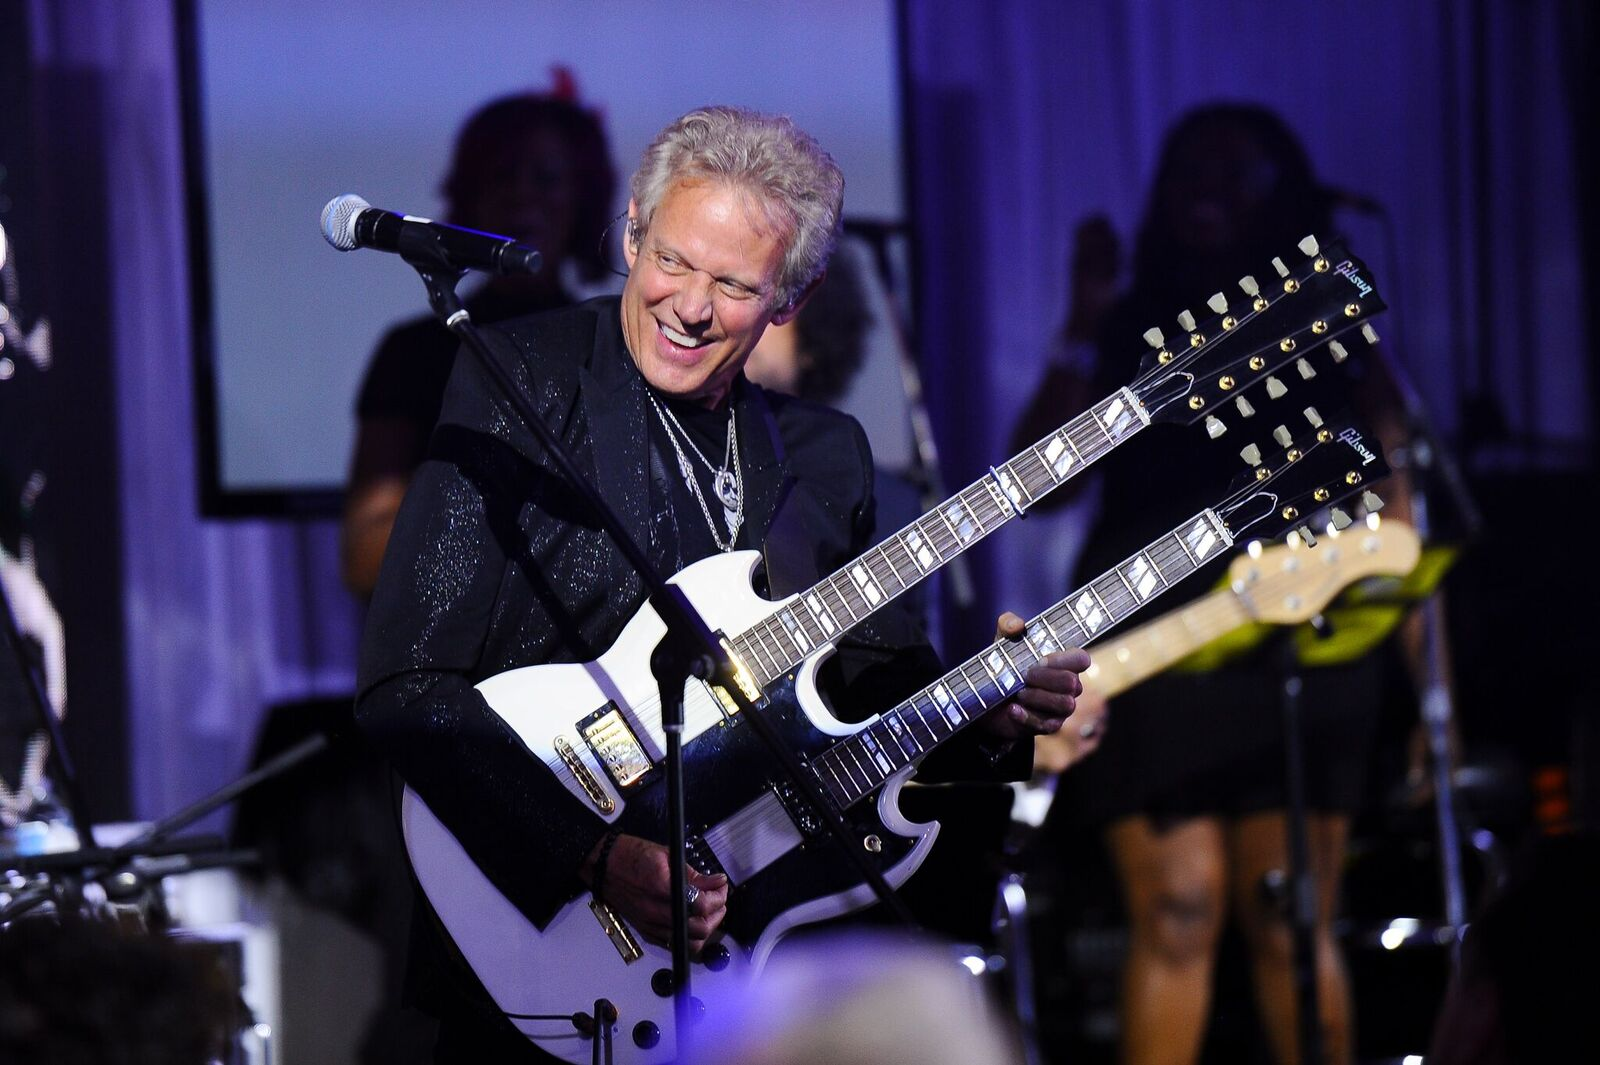 Jeffrey Latimer's longtime friend Don Felder suprised guests with a performance. Photo: George Pimentel Photography